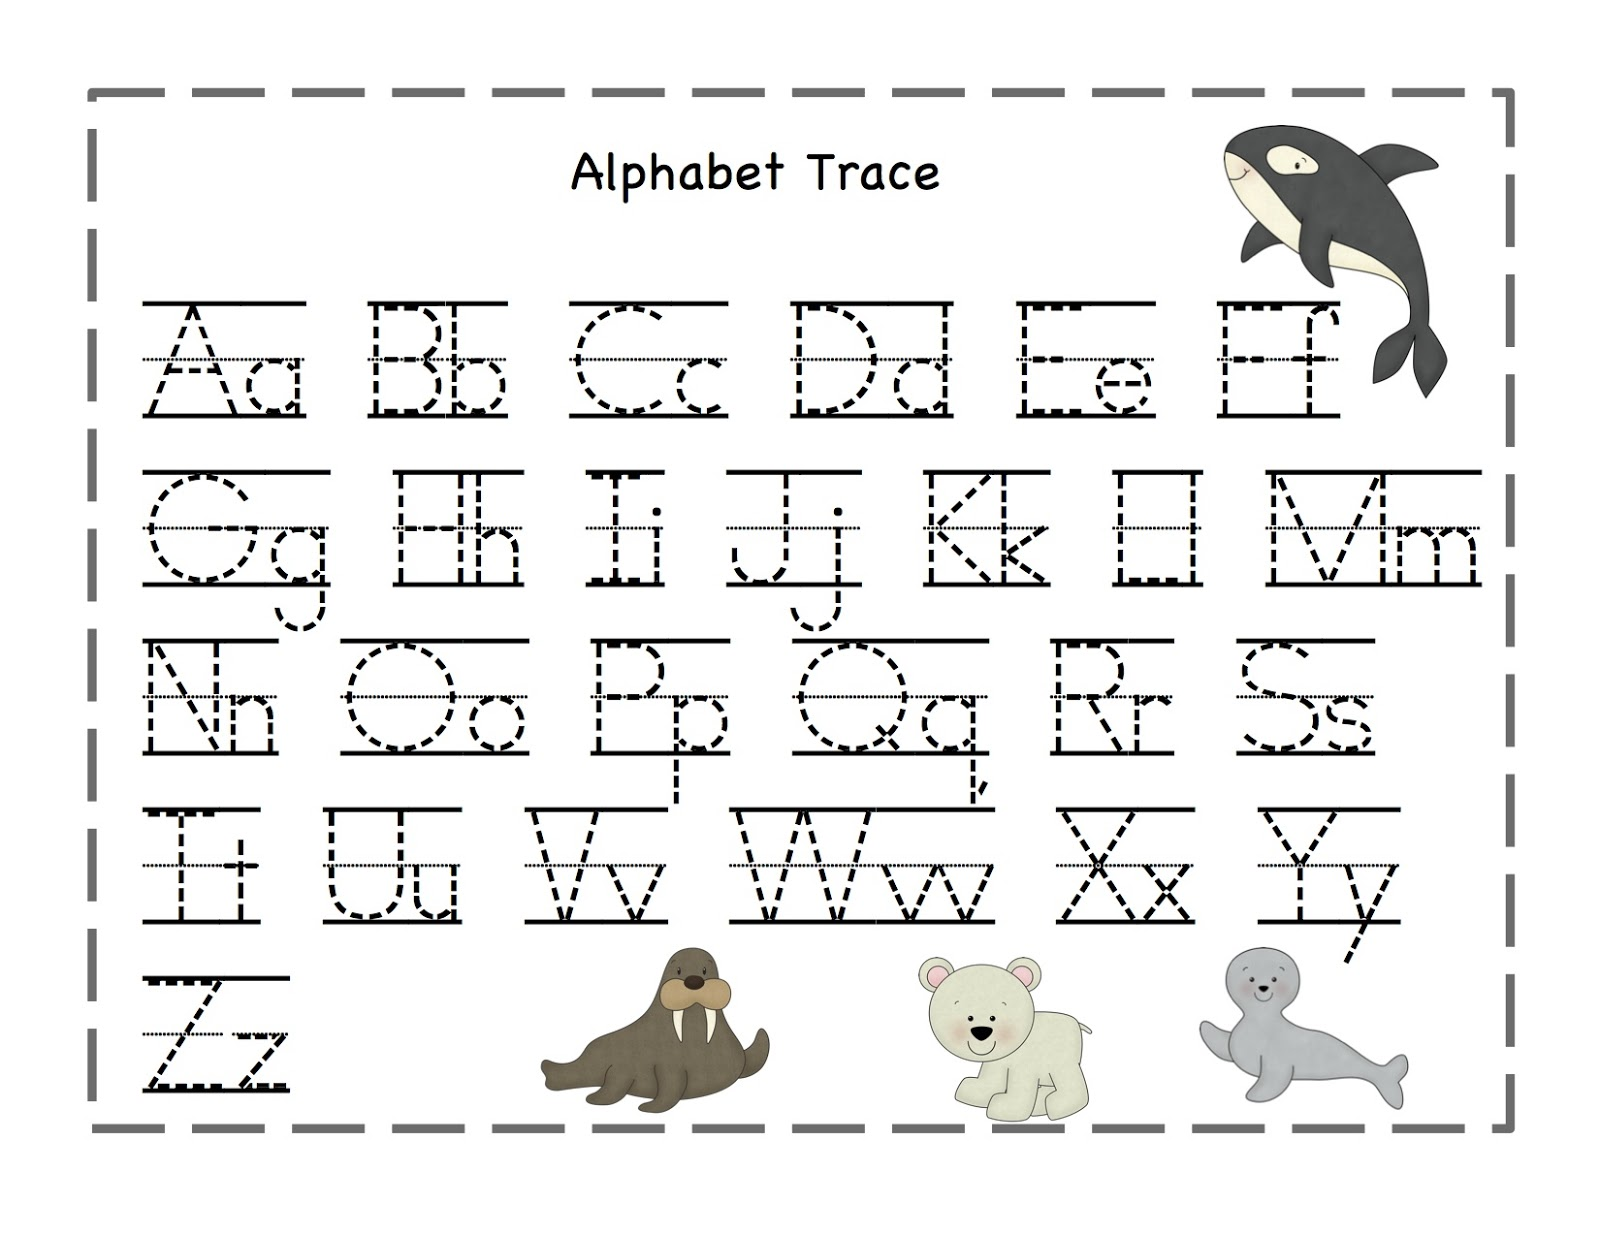 Worksheet Alphabet Letters To Trace Wosenly Free Worksheet – Trace Alphabet Worksheet